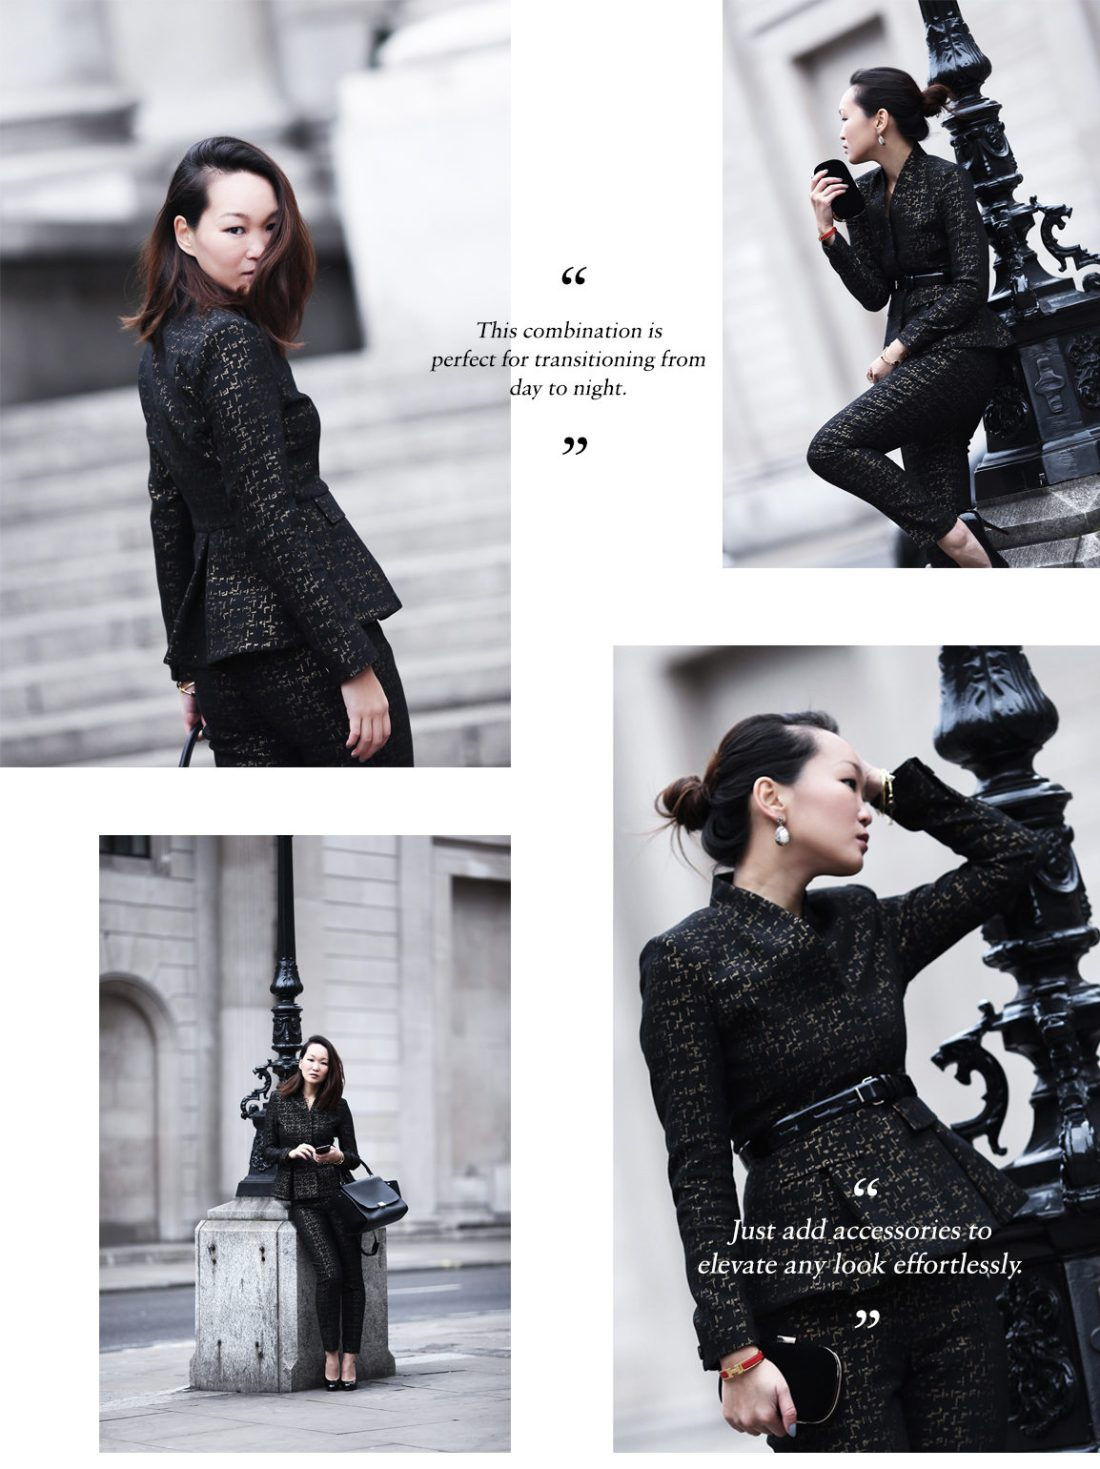 Mariko Kuo in the Wren Suit by The Fold London